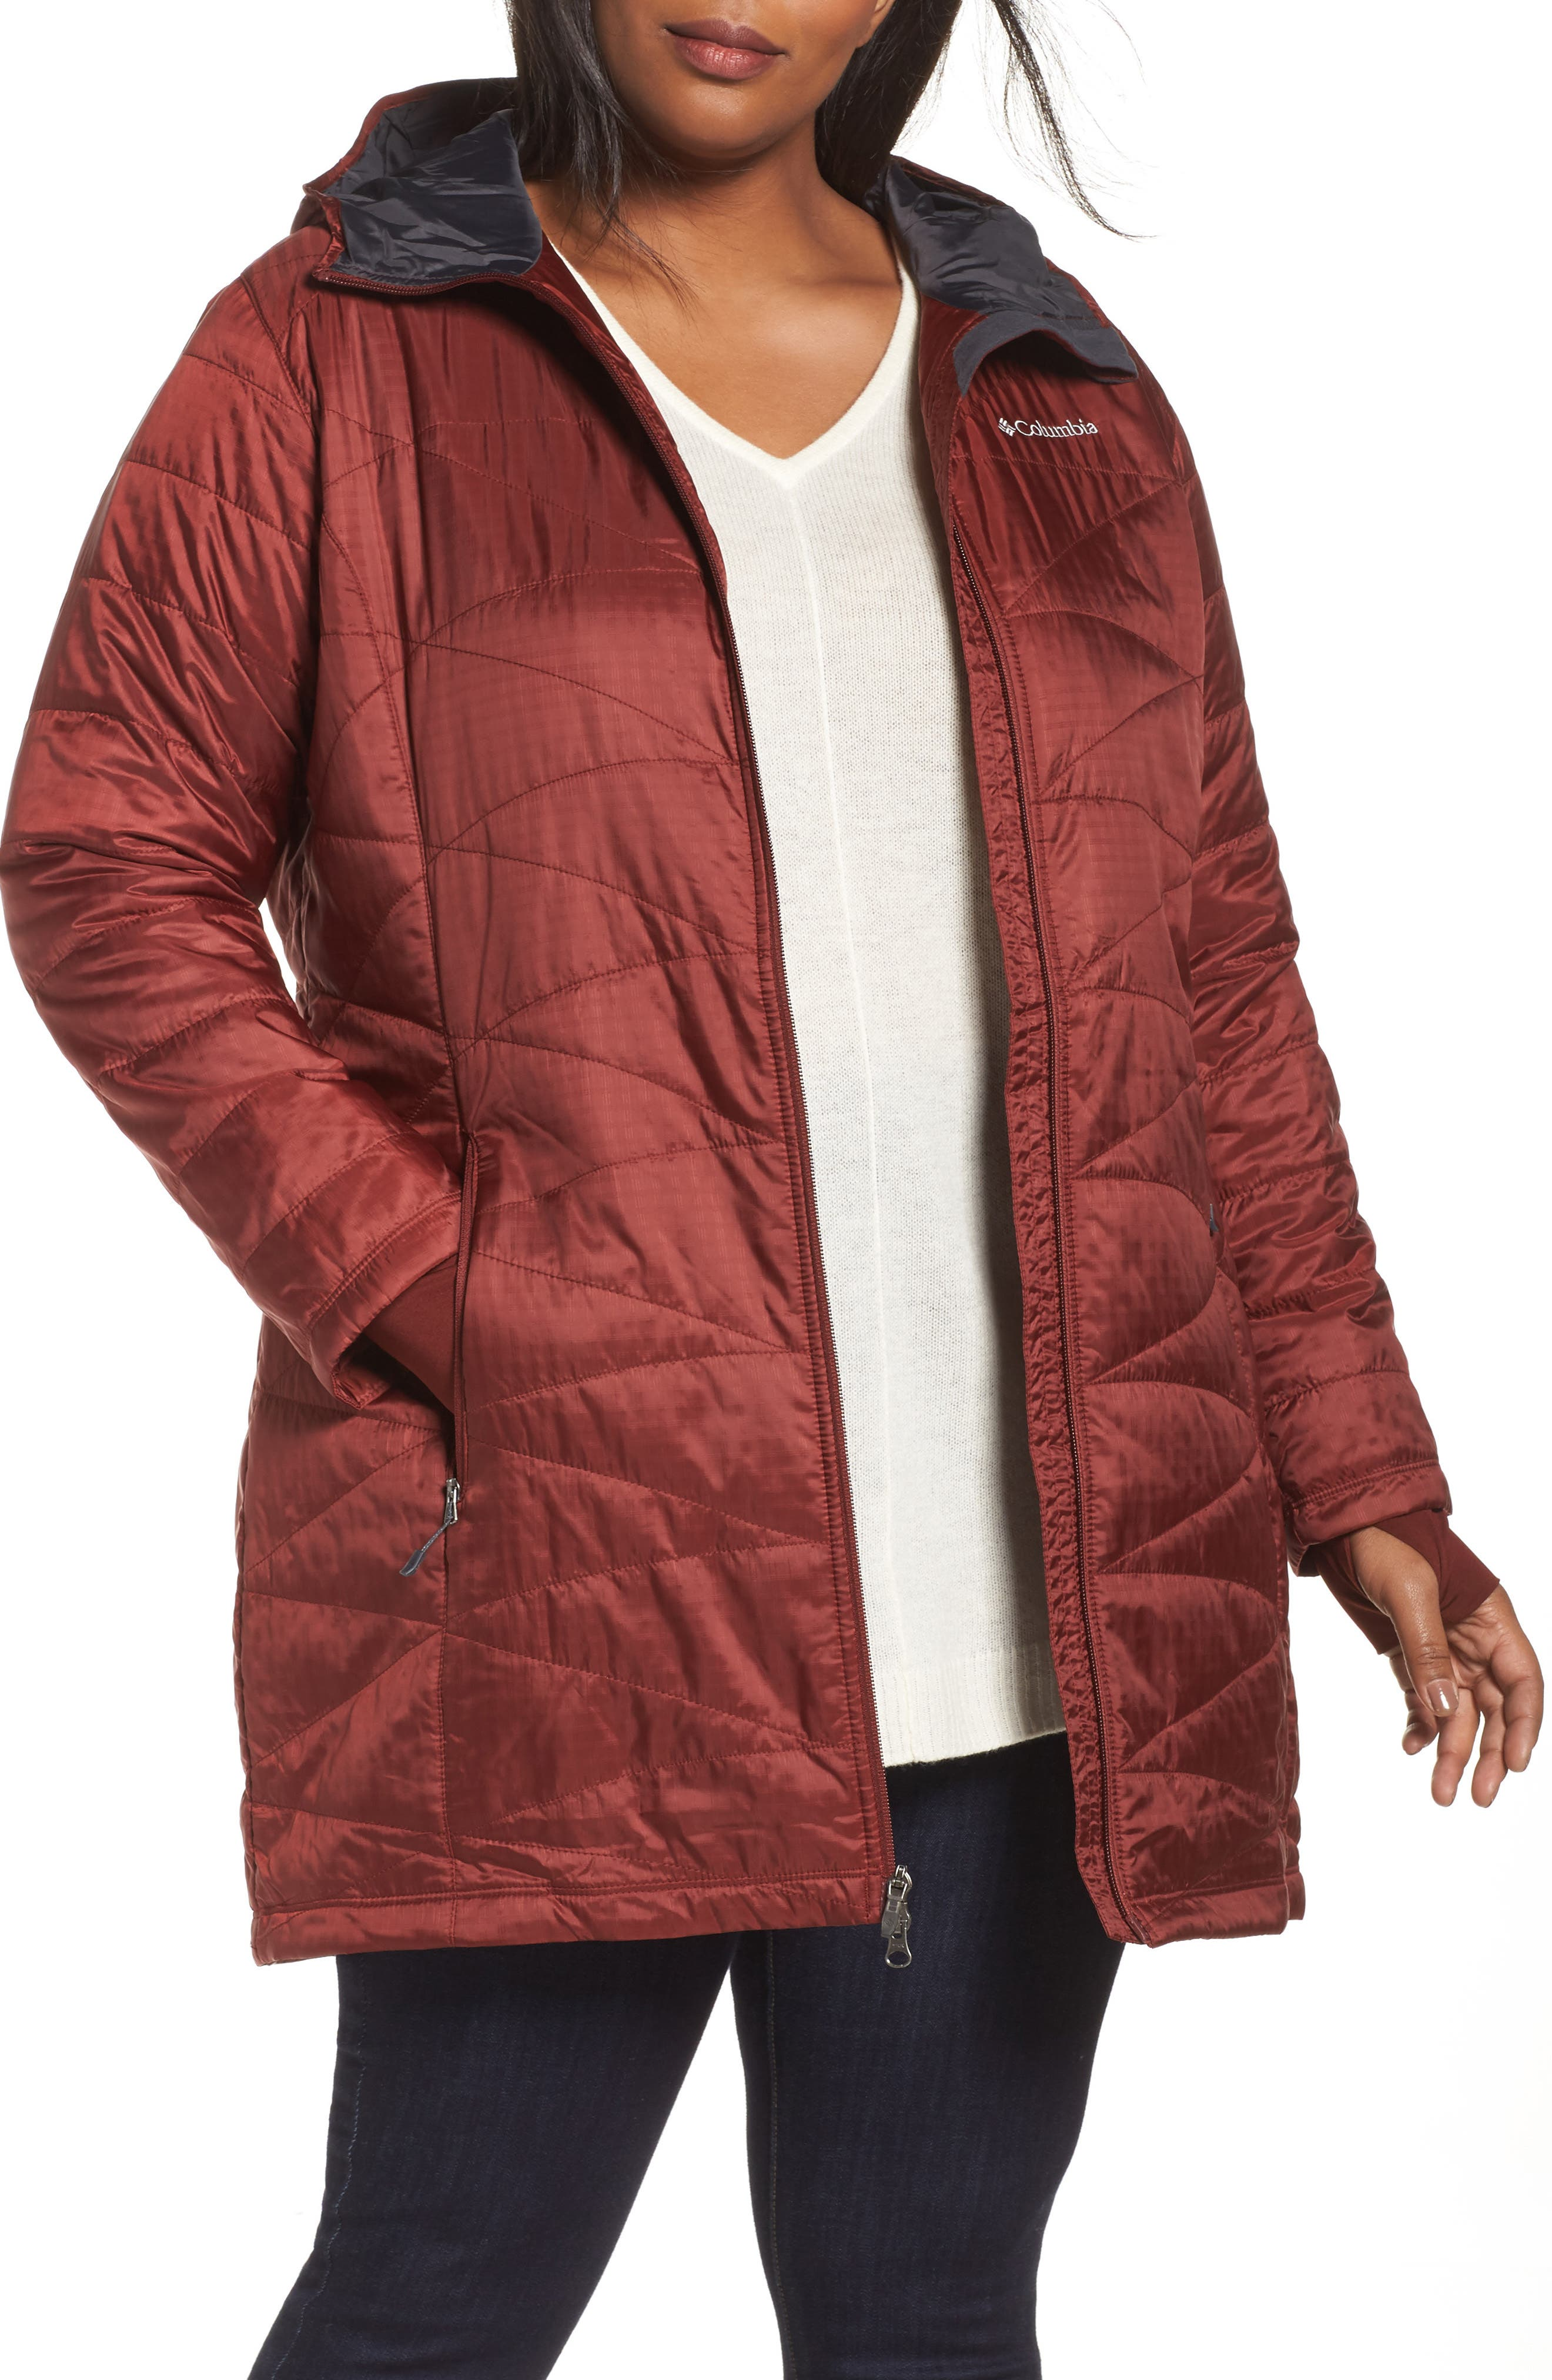 Mighty Lite Hooded Jacket,                         Main,                         color, Deep Rust